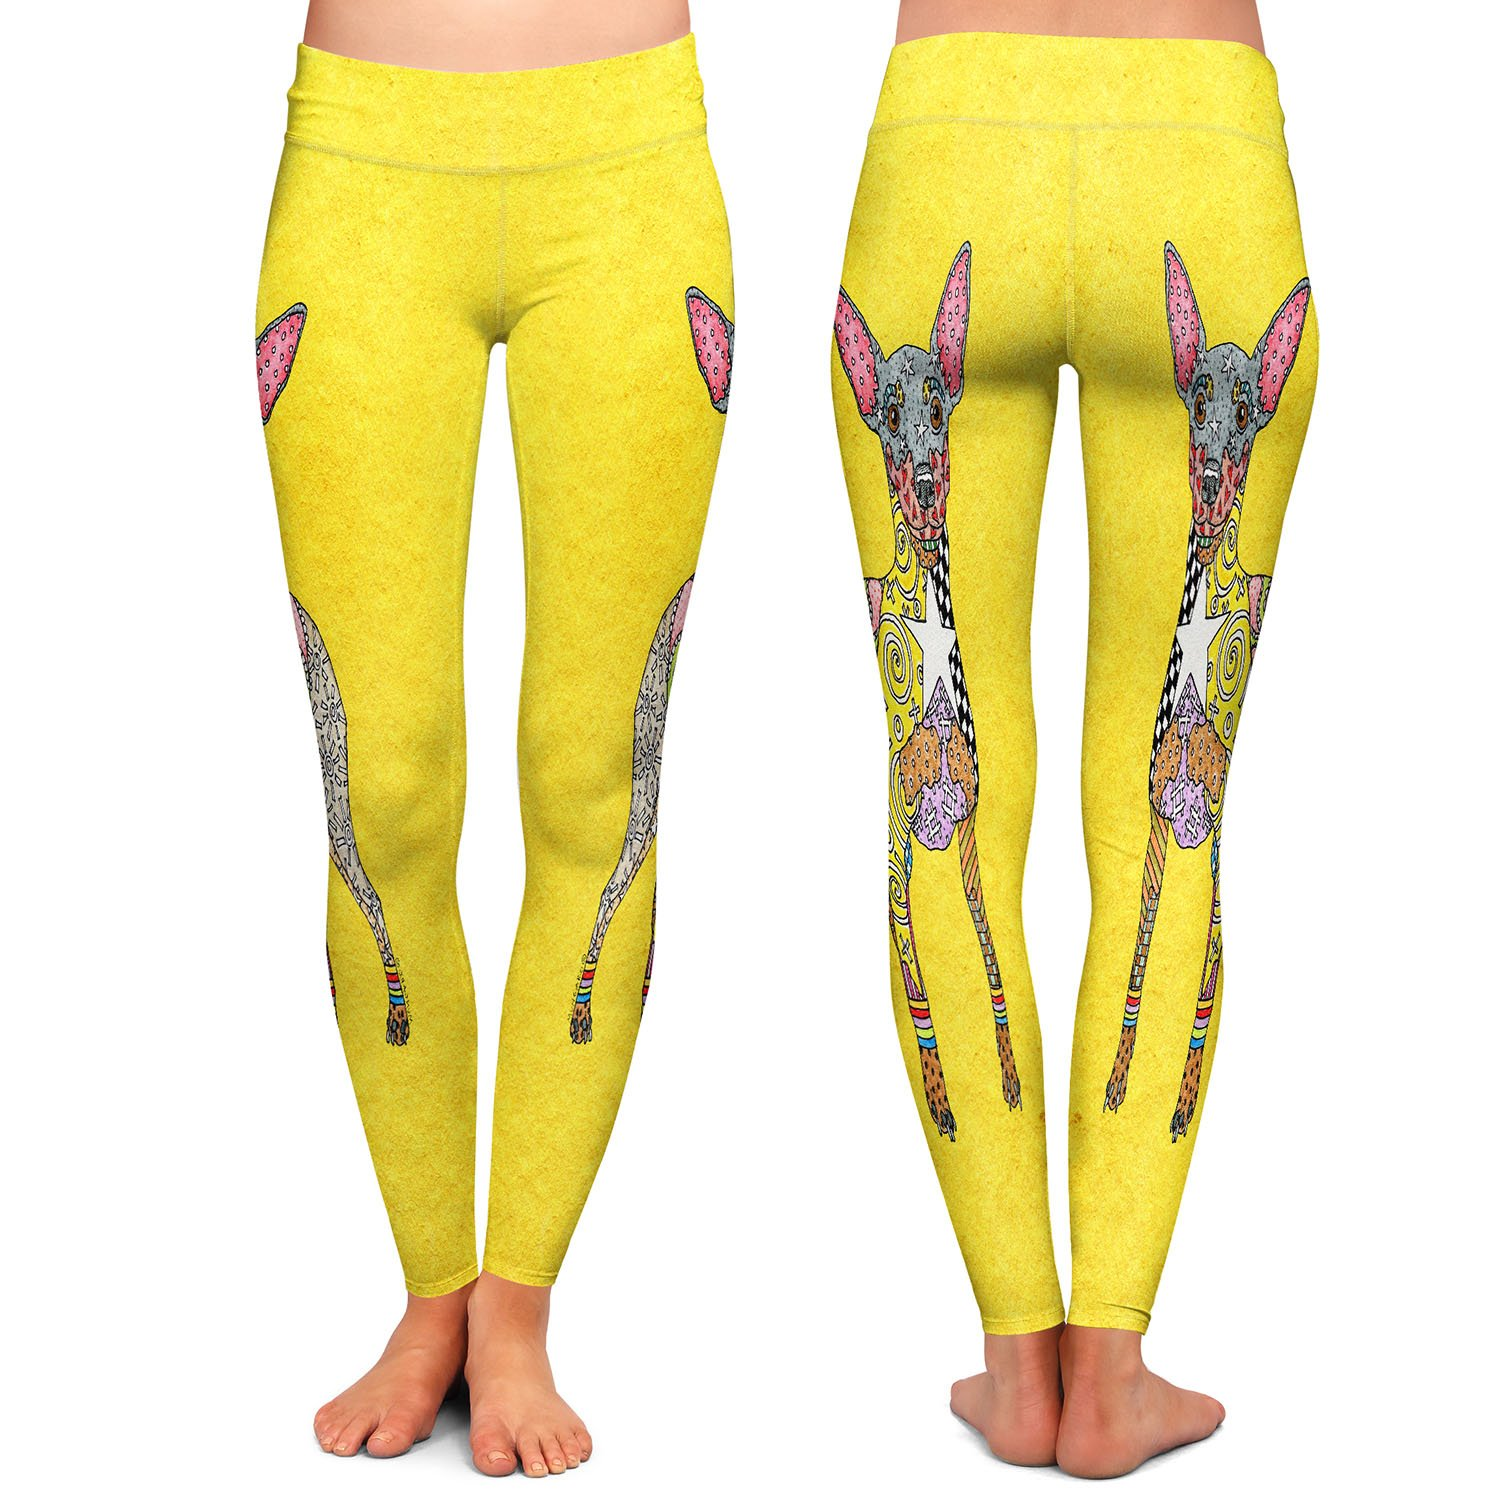 Mini Pinscher Yellow Athletic Yoga Leggings from DiaNoche Designs by Marley Ungaro